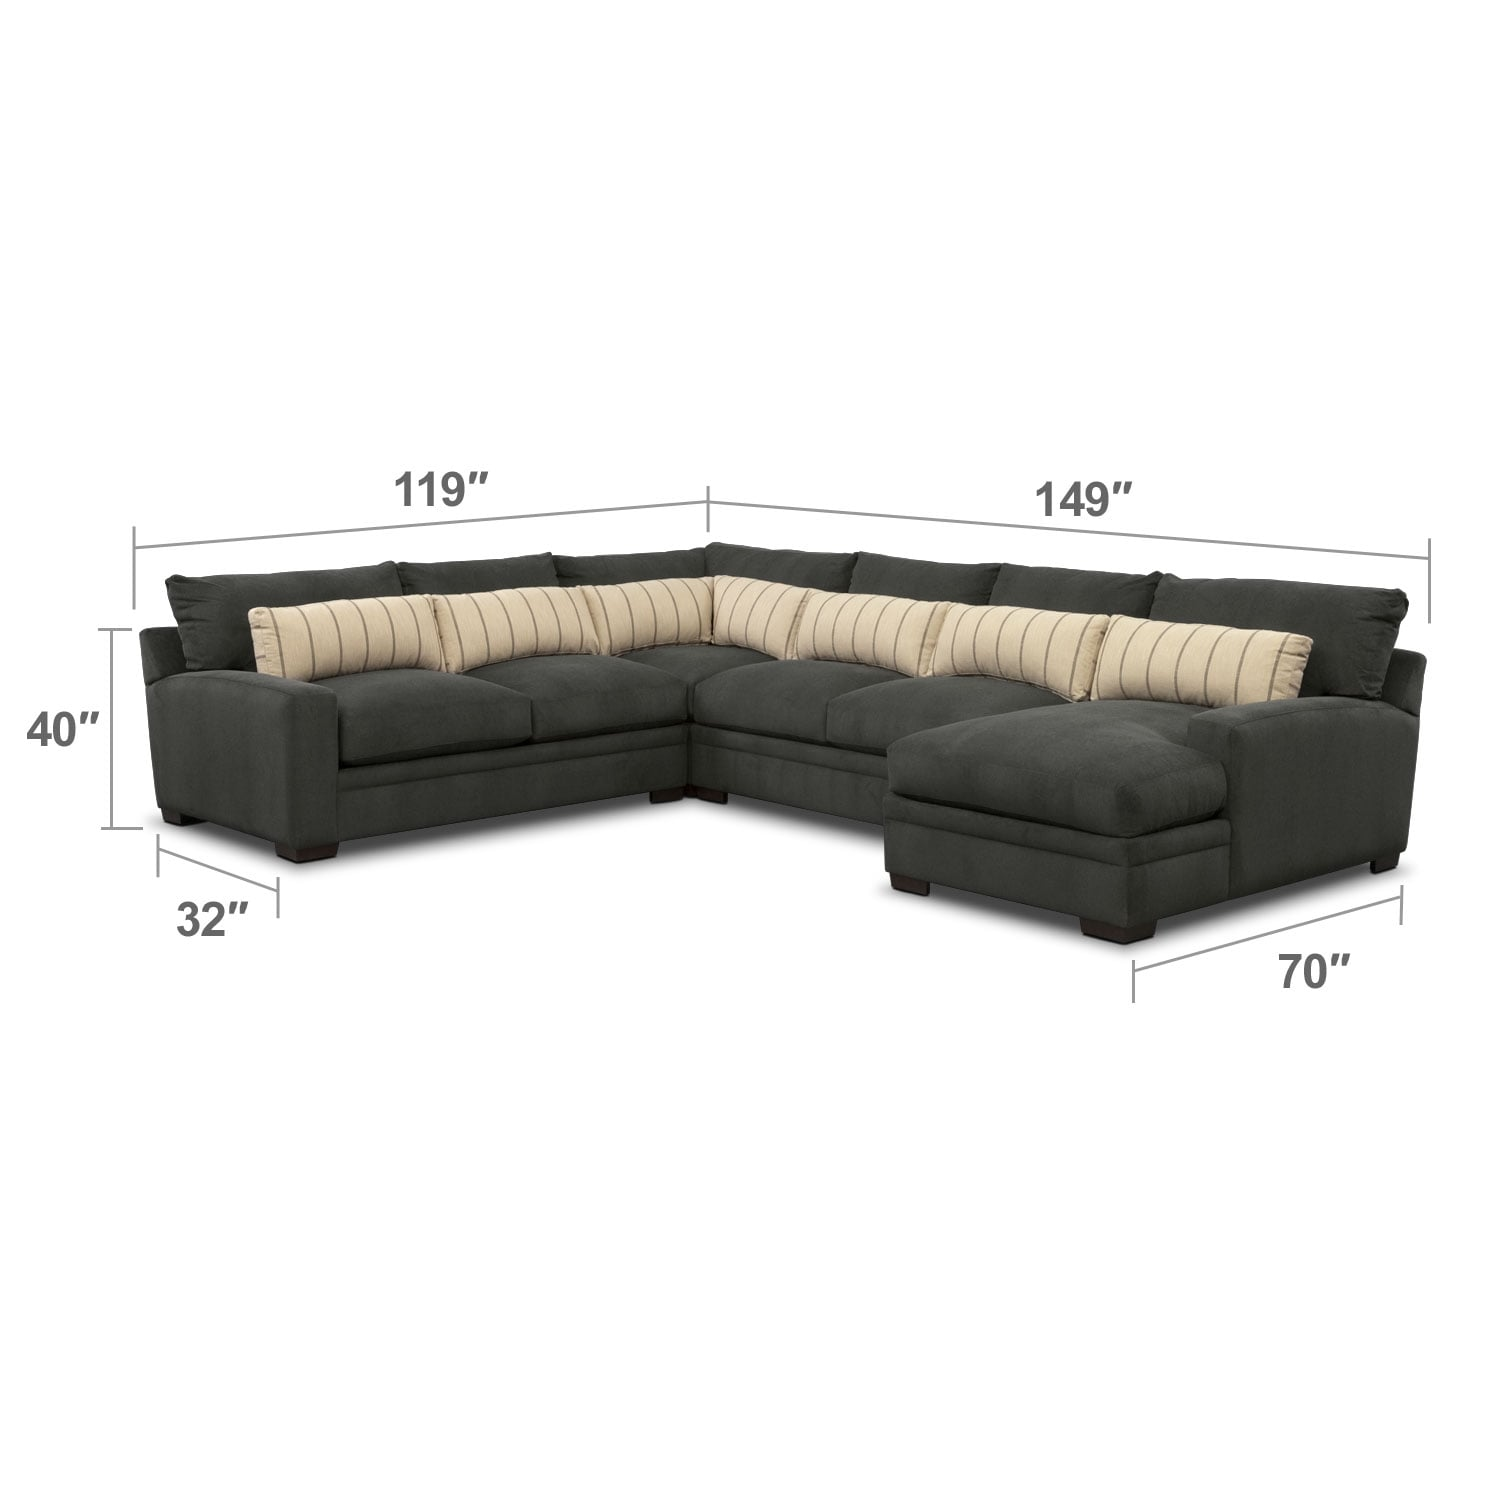 Living Room Furniture - Ventura 4-Piece Sectional with Right-Facing Chaise - Charcoal